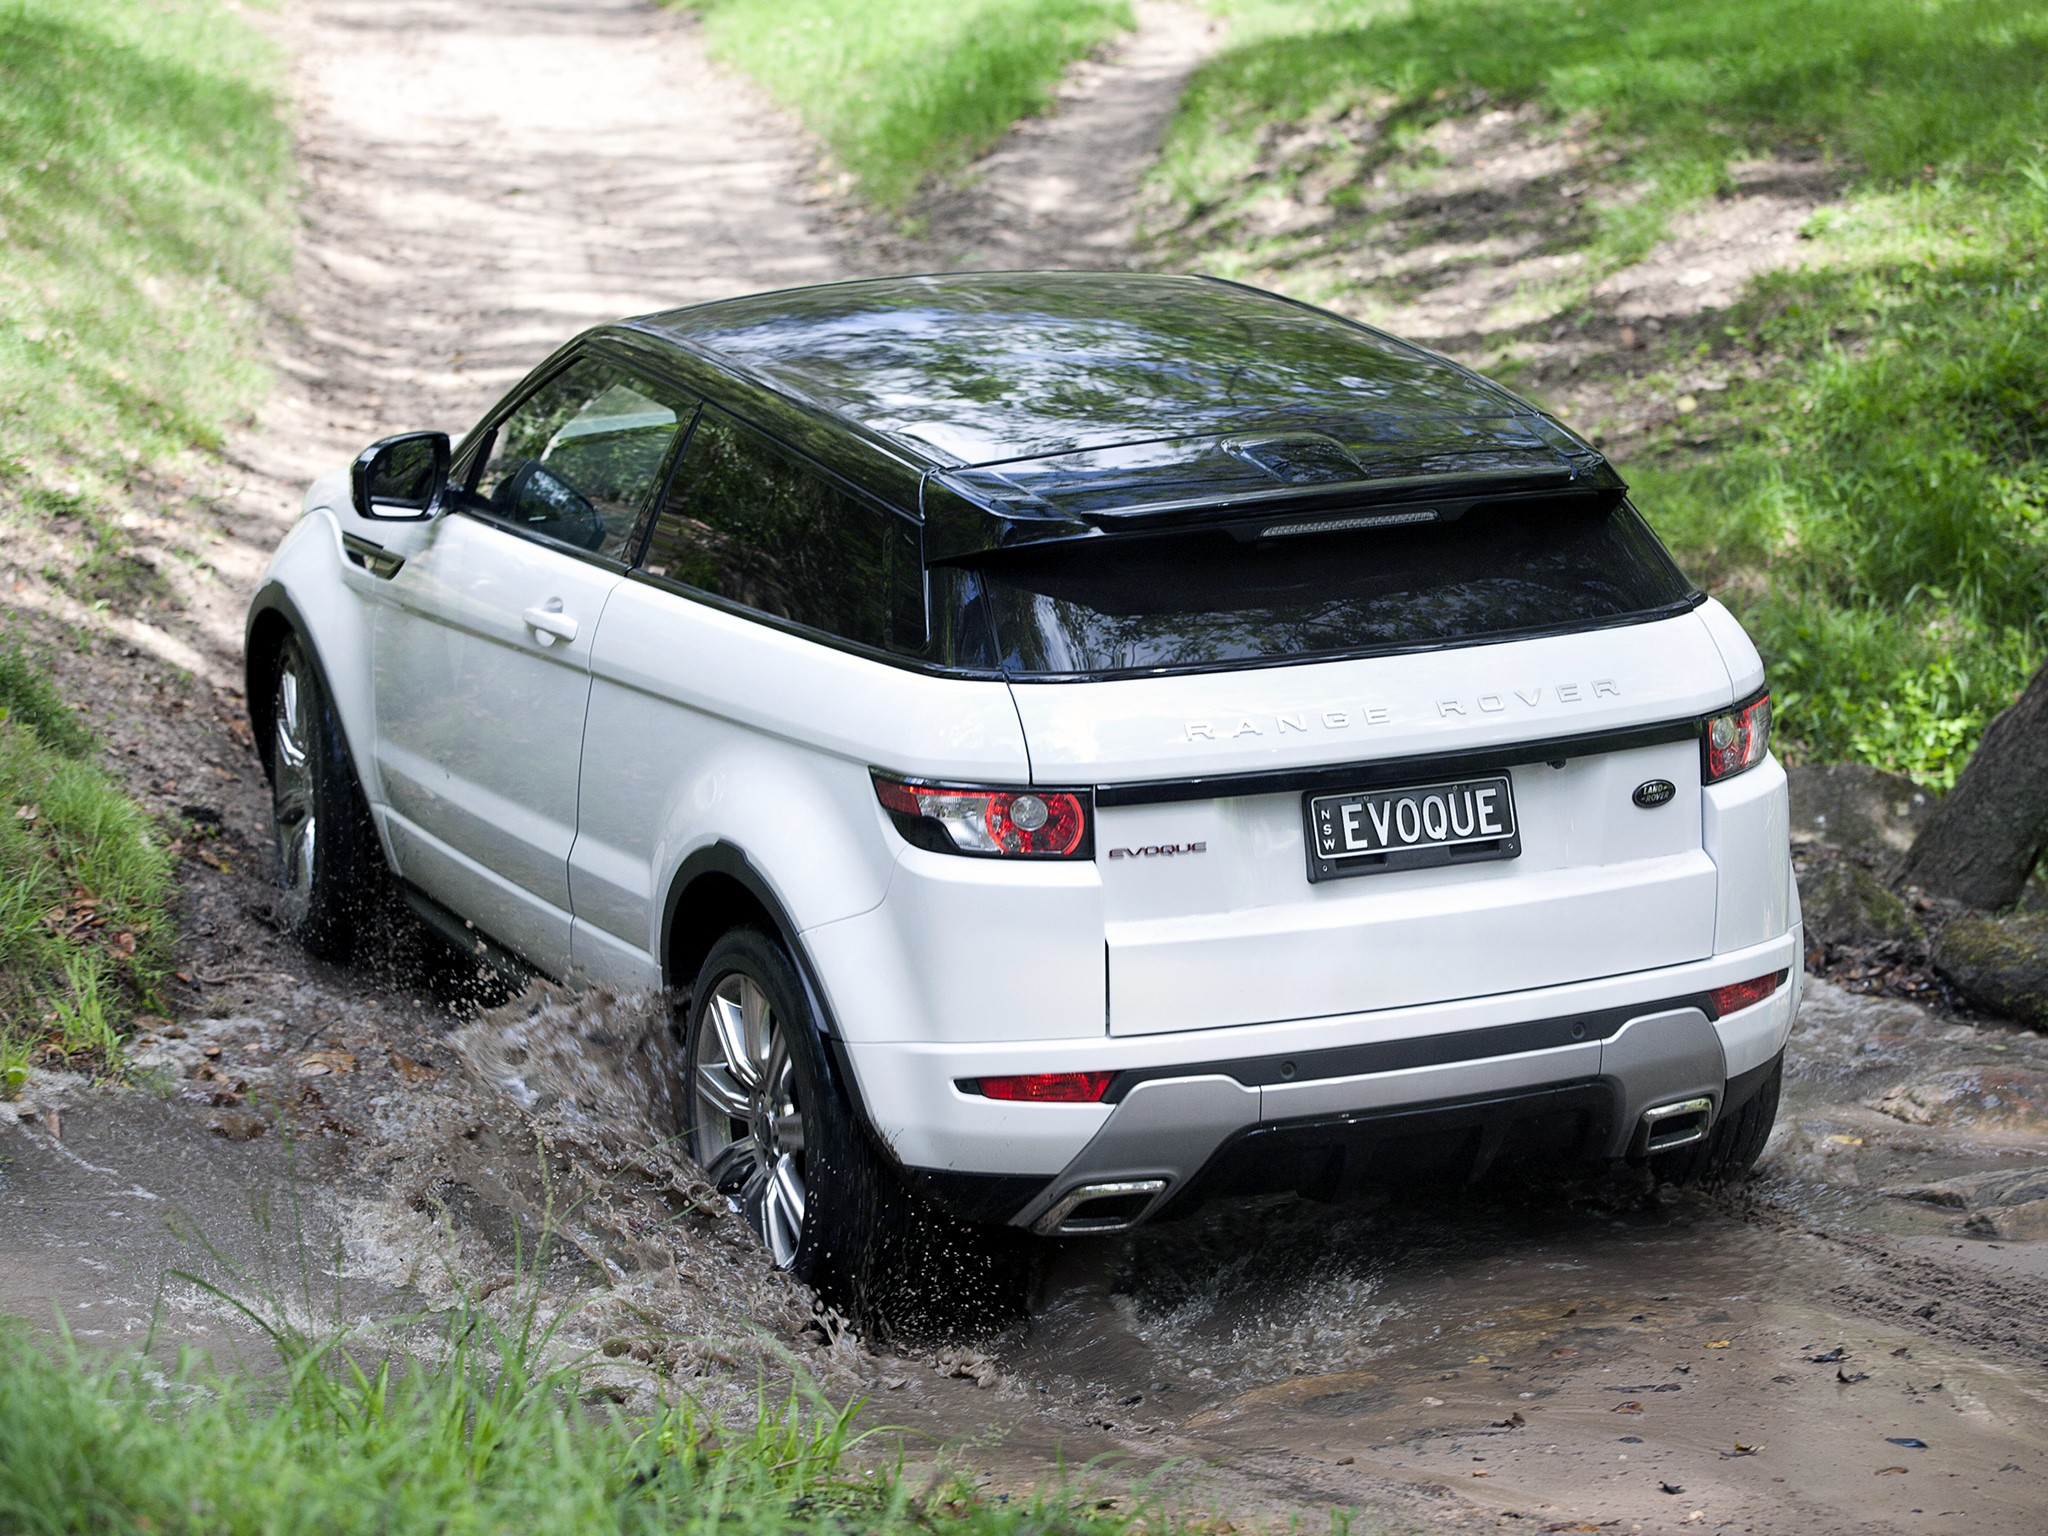 land rover range rover evoque coupe specs 2011 2012. Black Bedroom Furniture Sets. Home Design Ideas